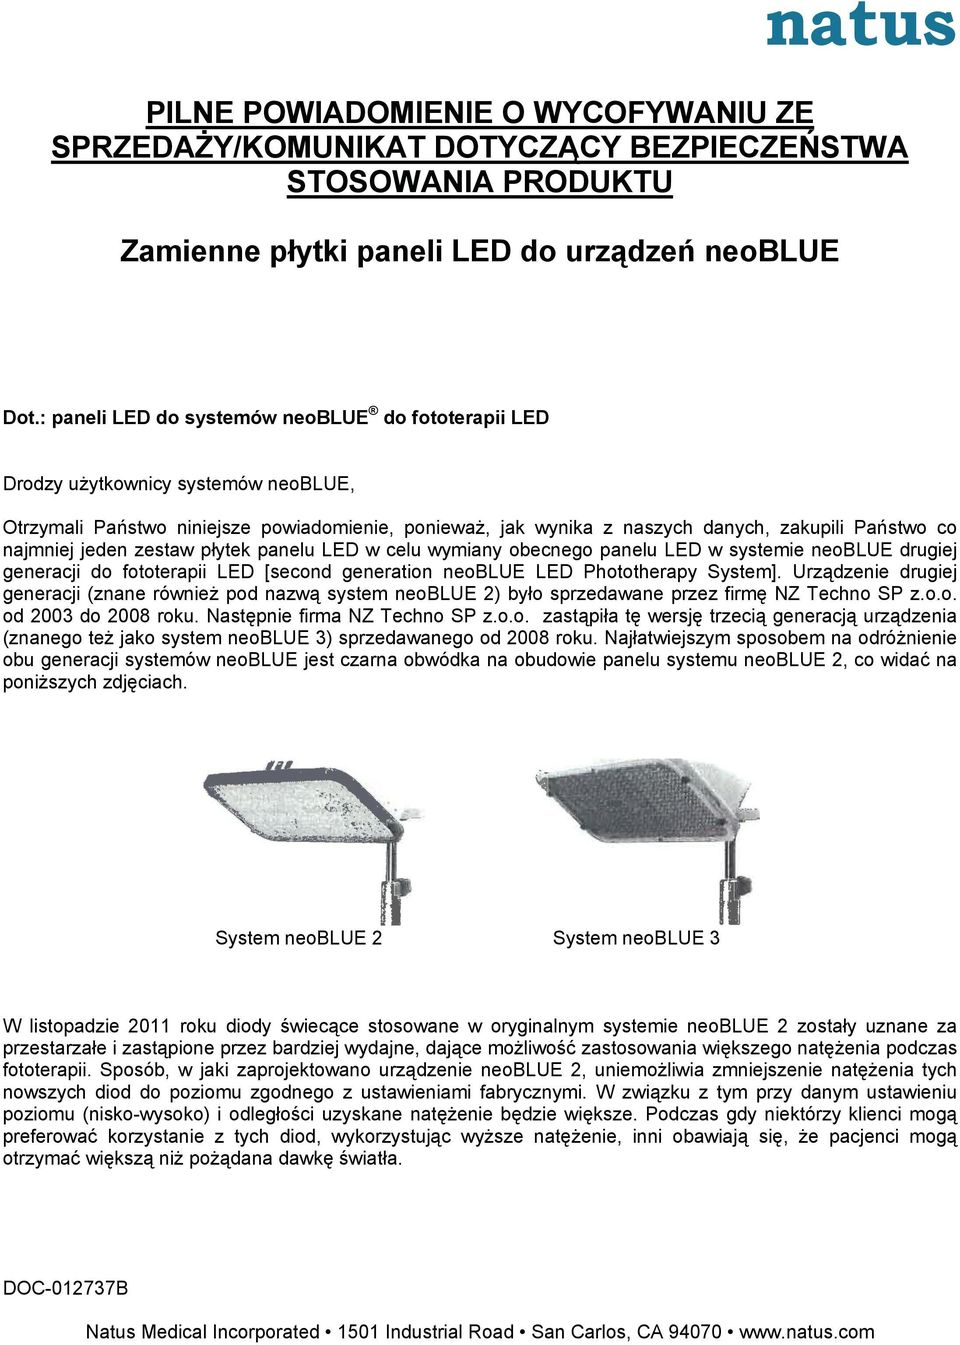 jeden zestaw płytek panelu LED w celu wymiany obecnego panelu LED w systemie neoblue drugiej generacji do fototerapii LED [second generation neoblue LED Phototherapy System].